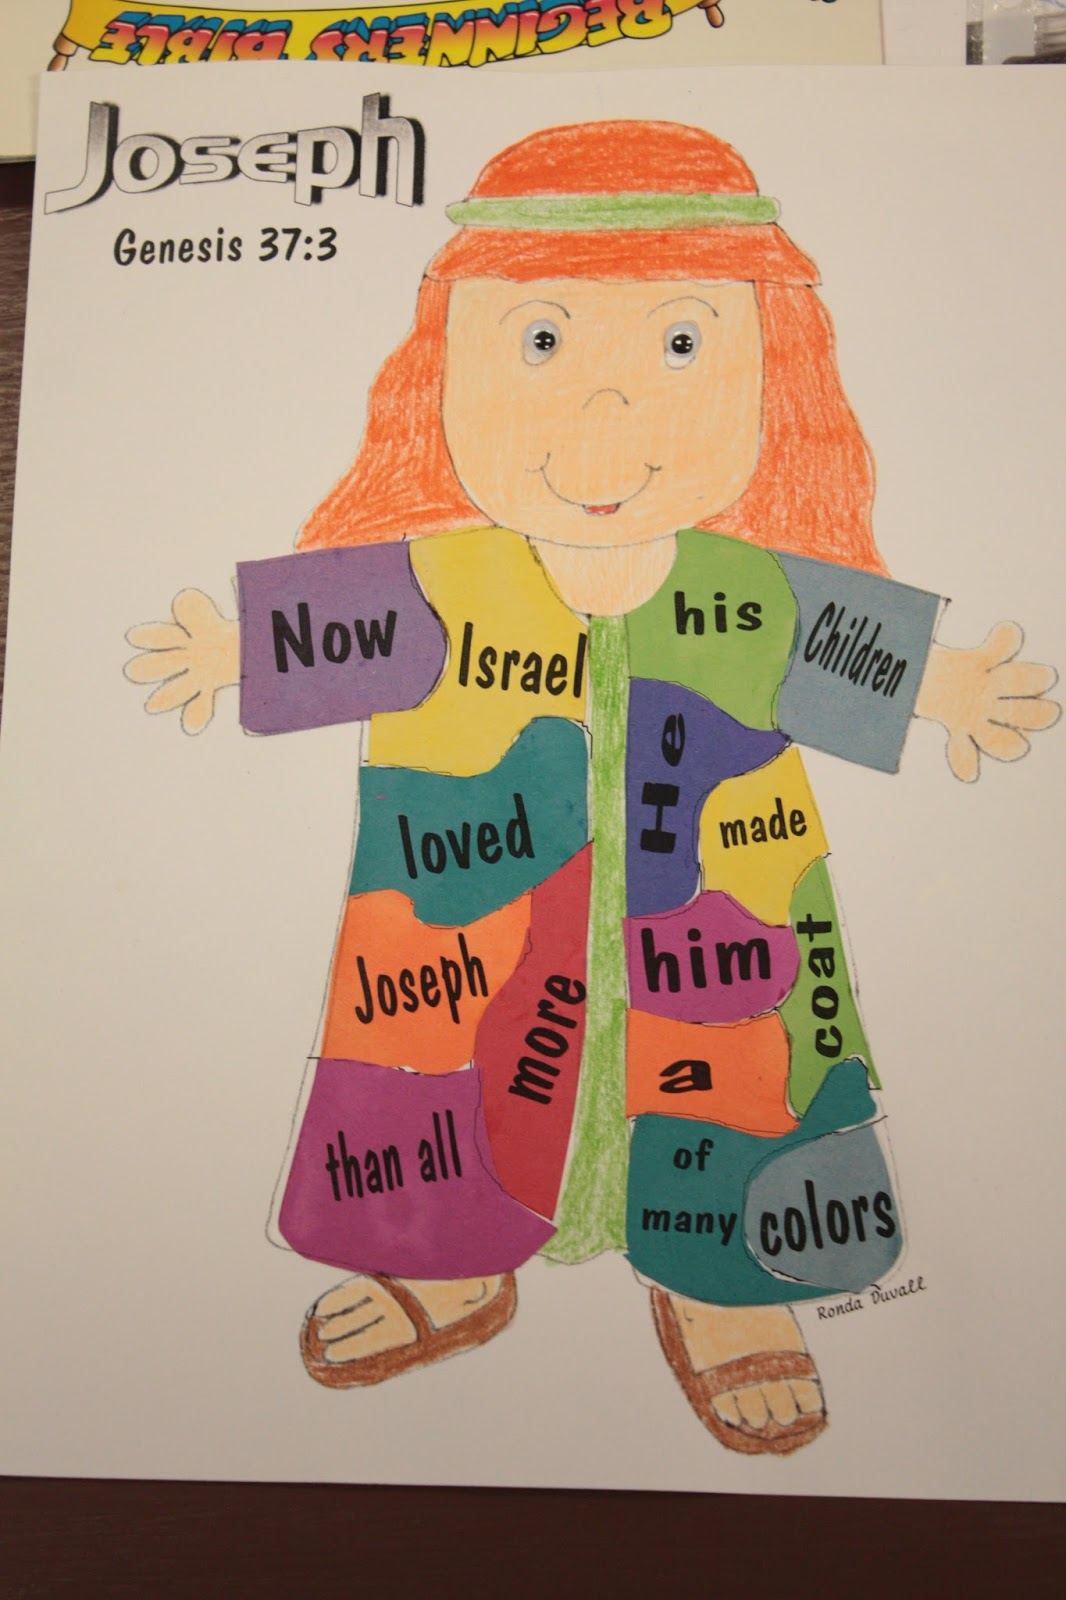 Hands On Bible Teacher Joseph And His Colorful Coat Joseph Coat Of Many Colors Activity